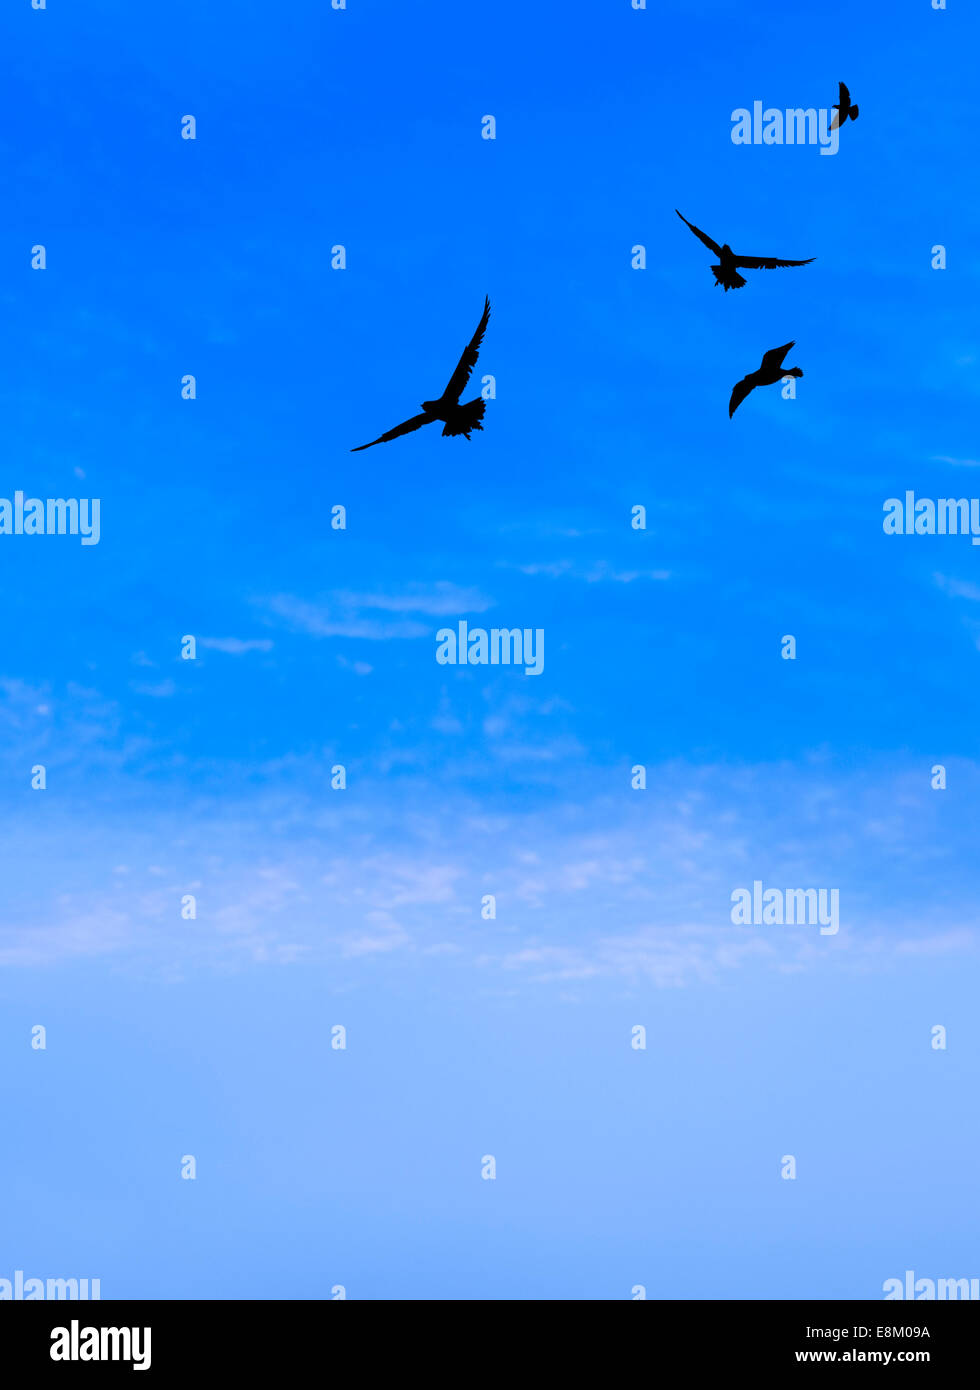 birds flying with cloudy blue sky at dawn - Stock Image